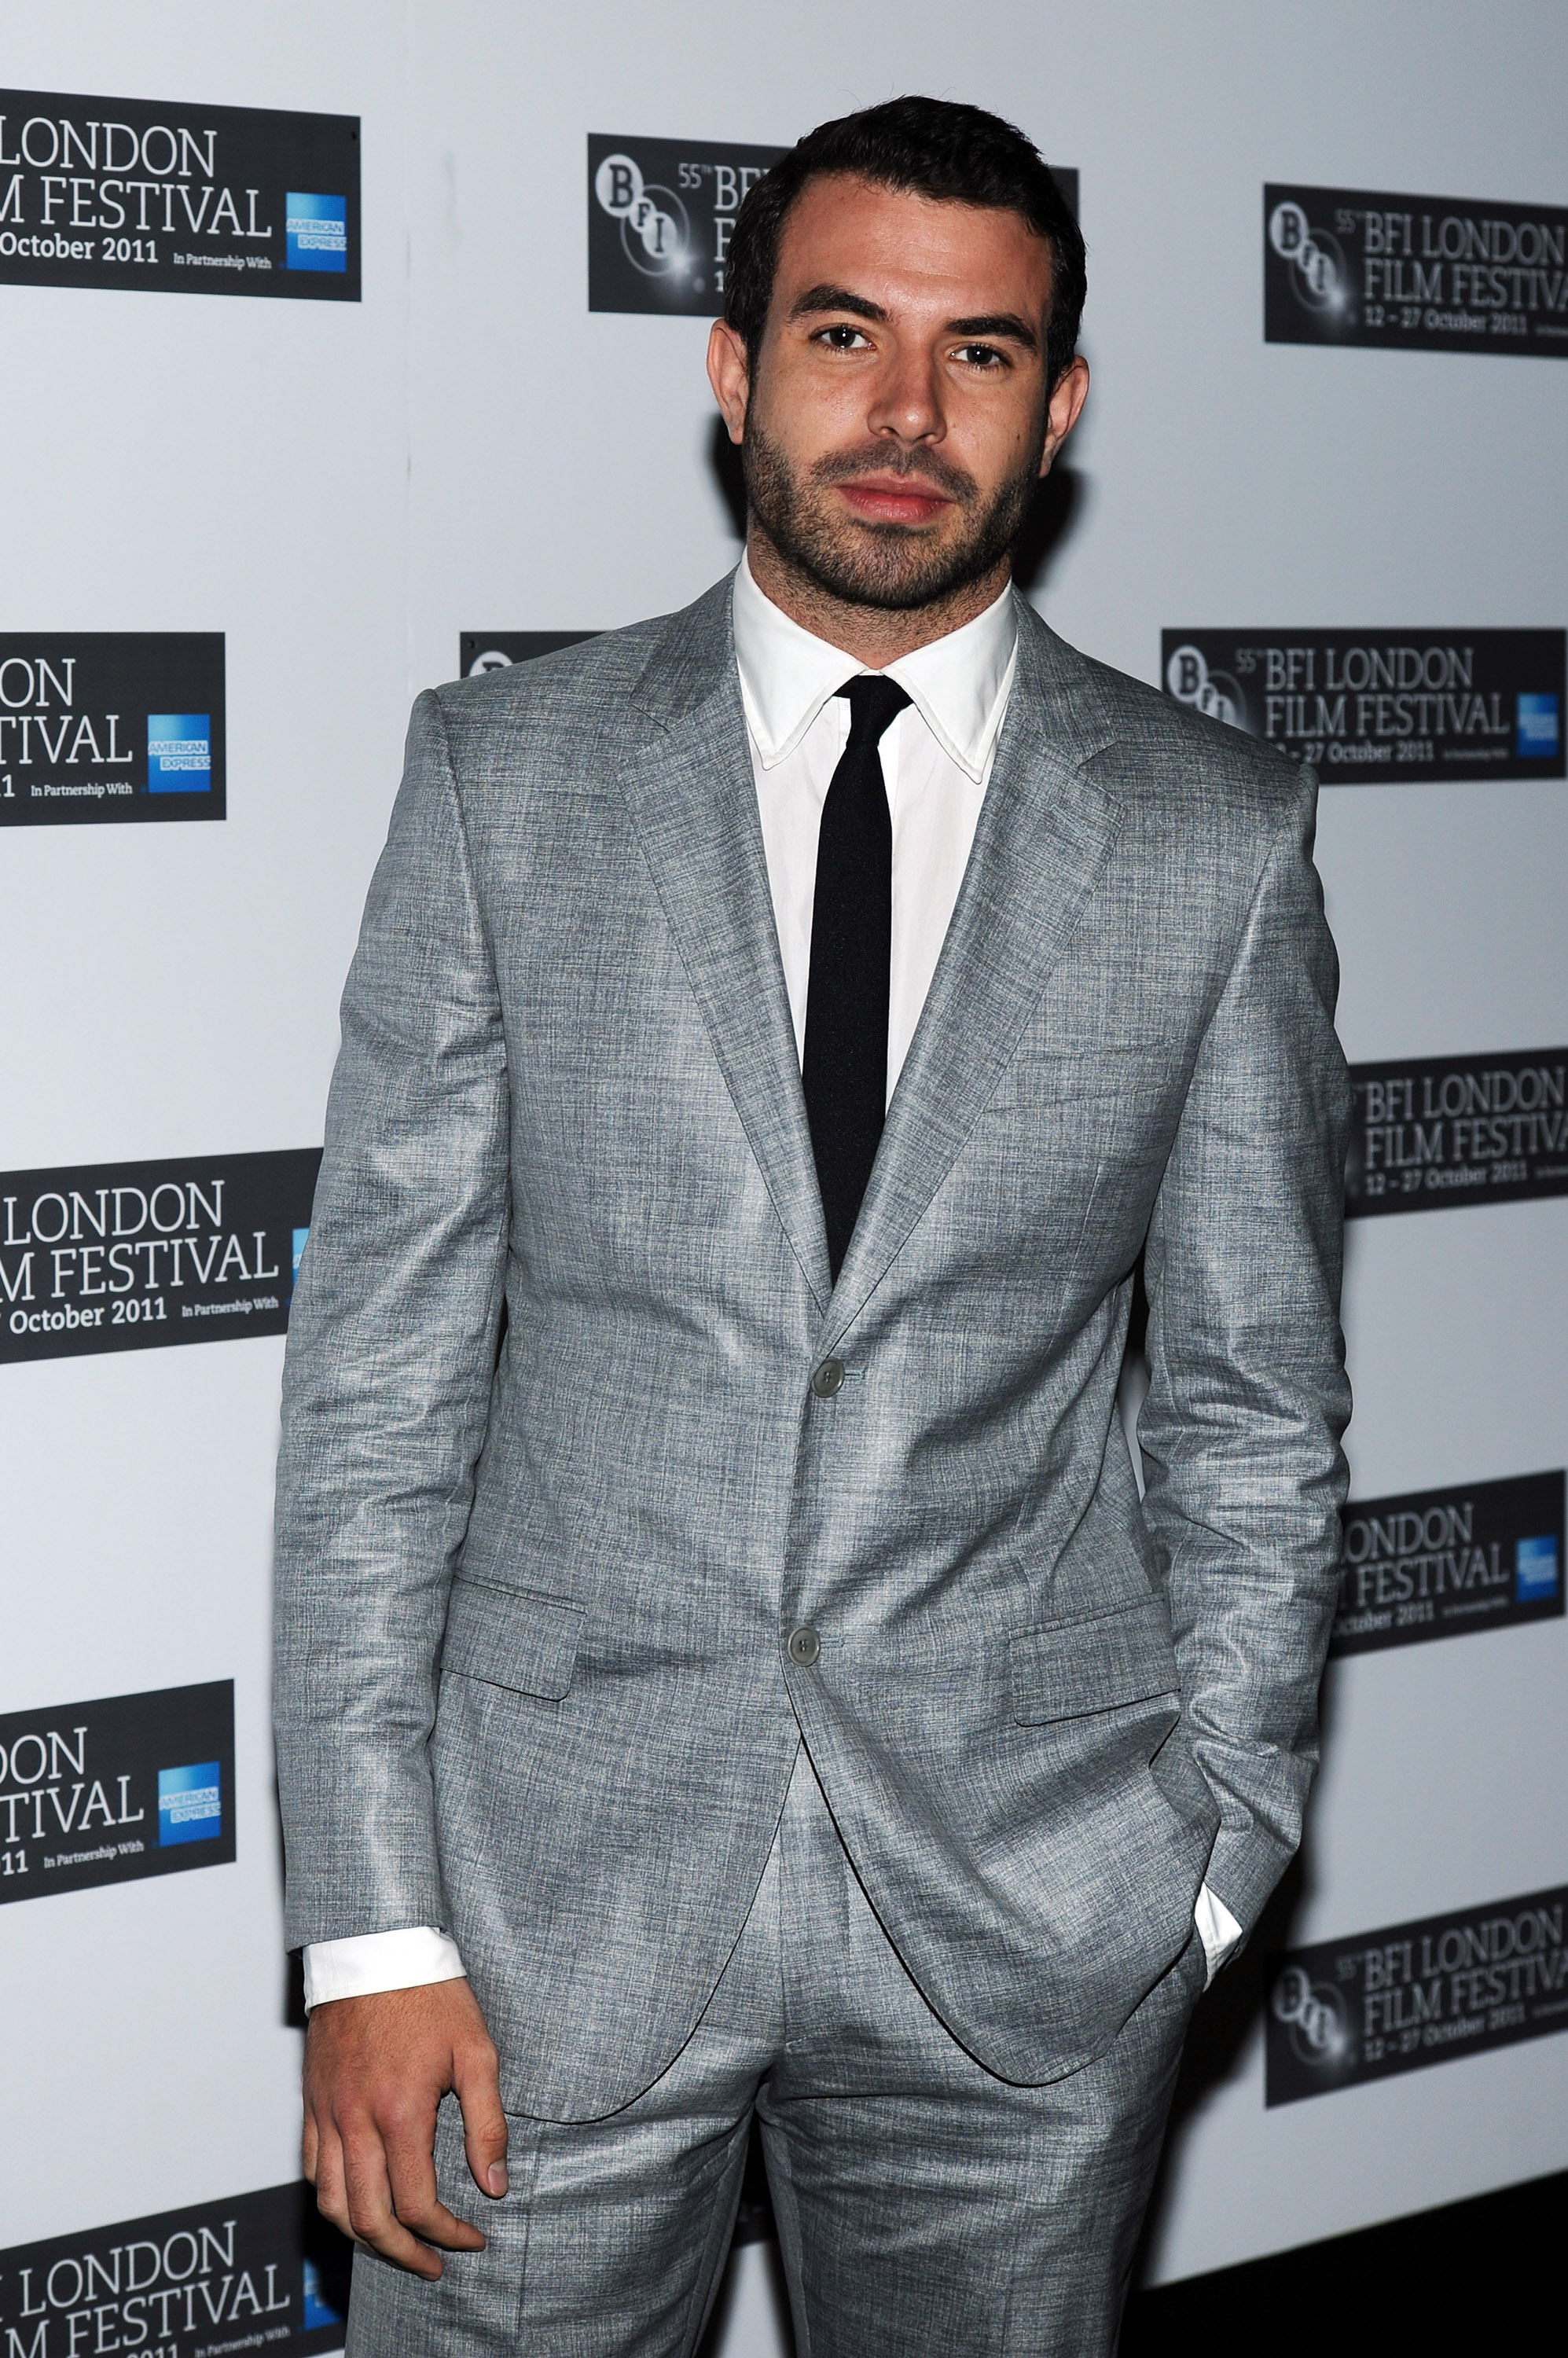 Downton Abbey's Tom Cullen would rather make his granny proud than head off to America in search of fame